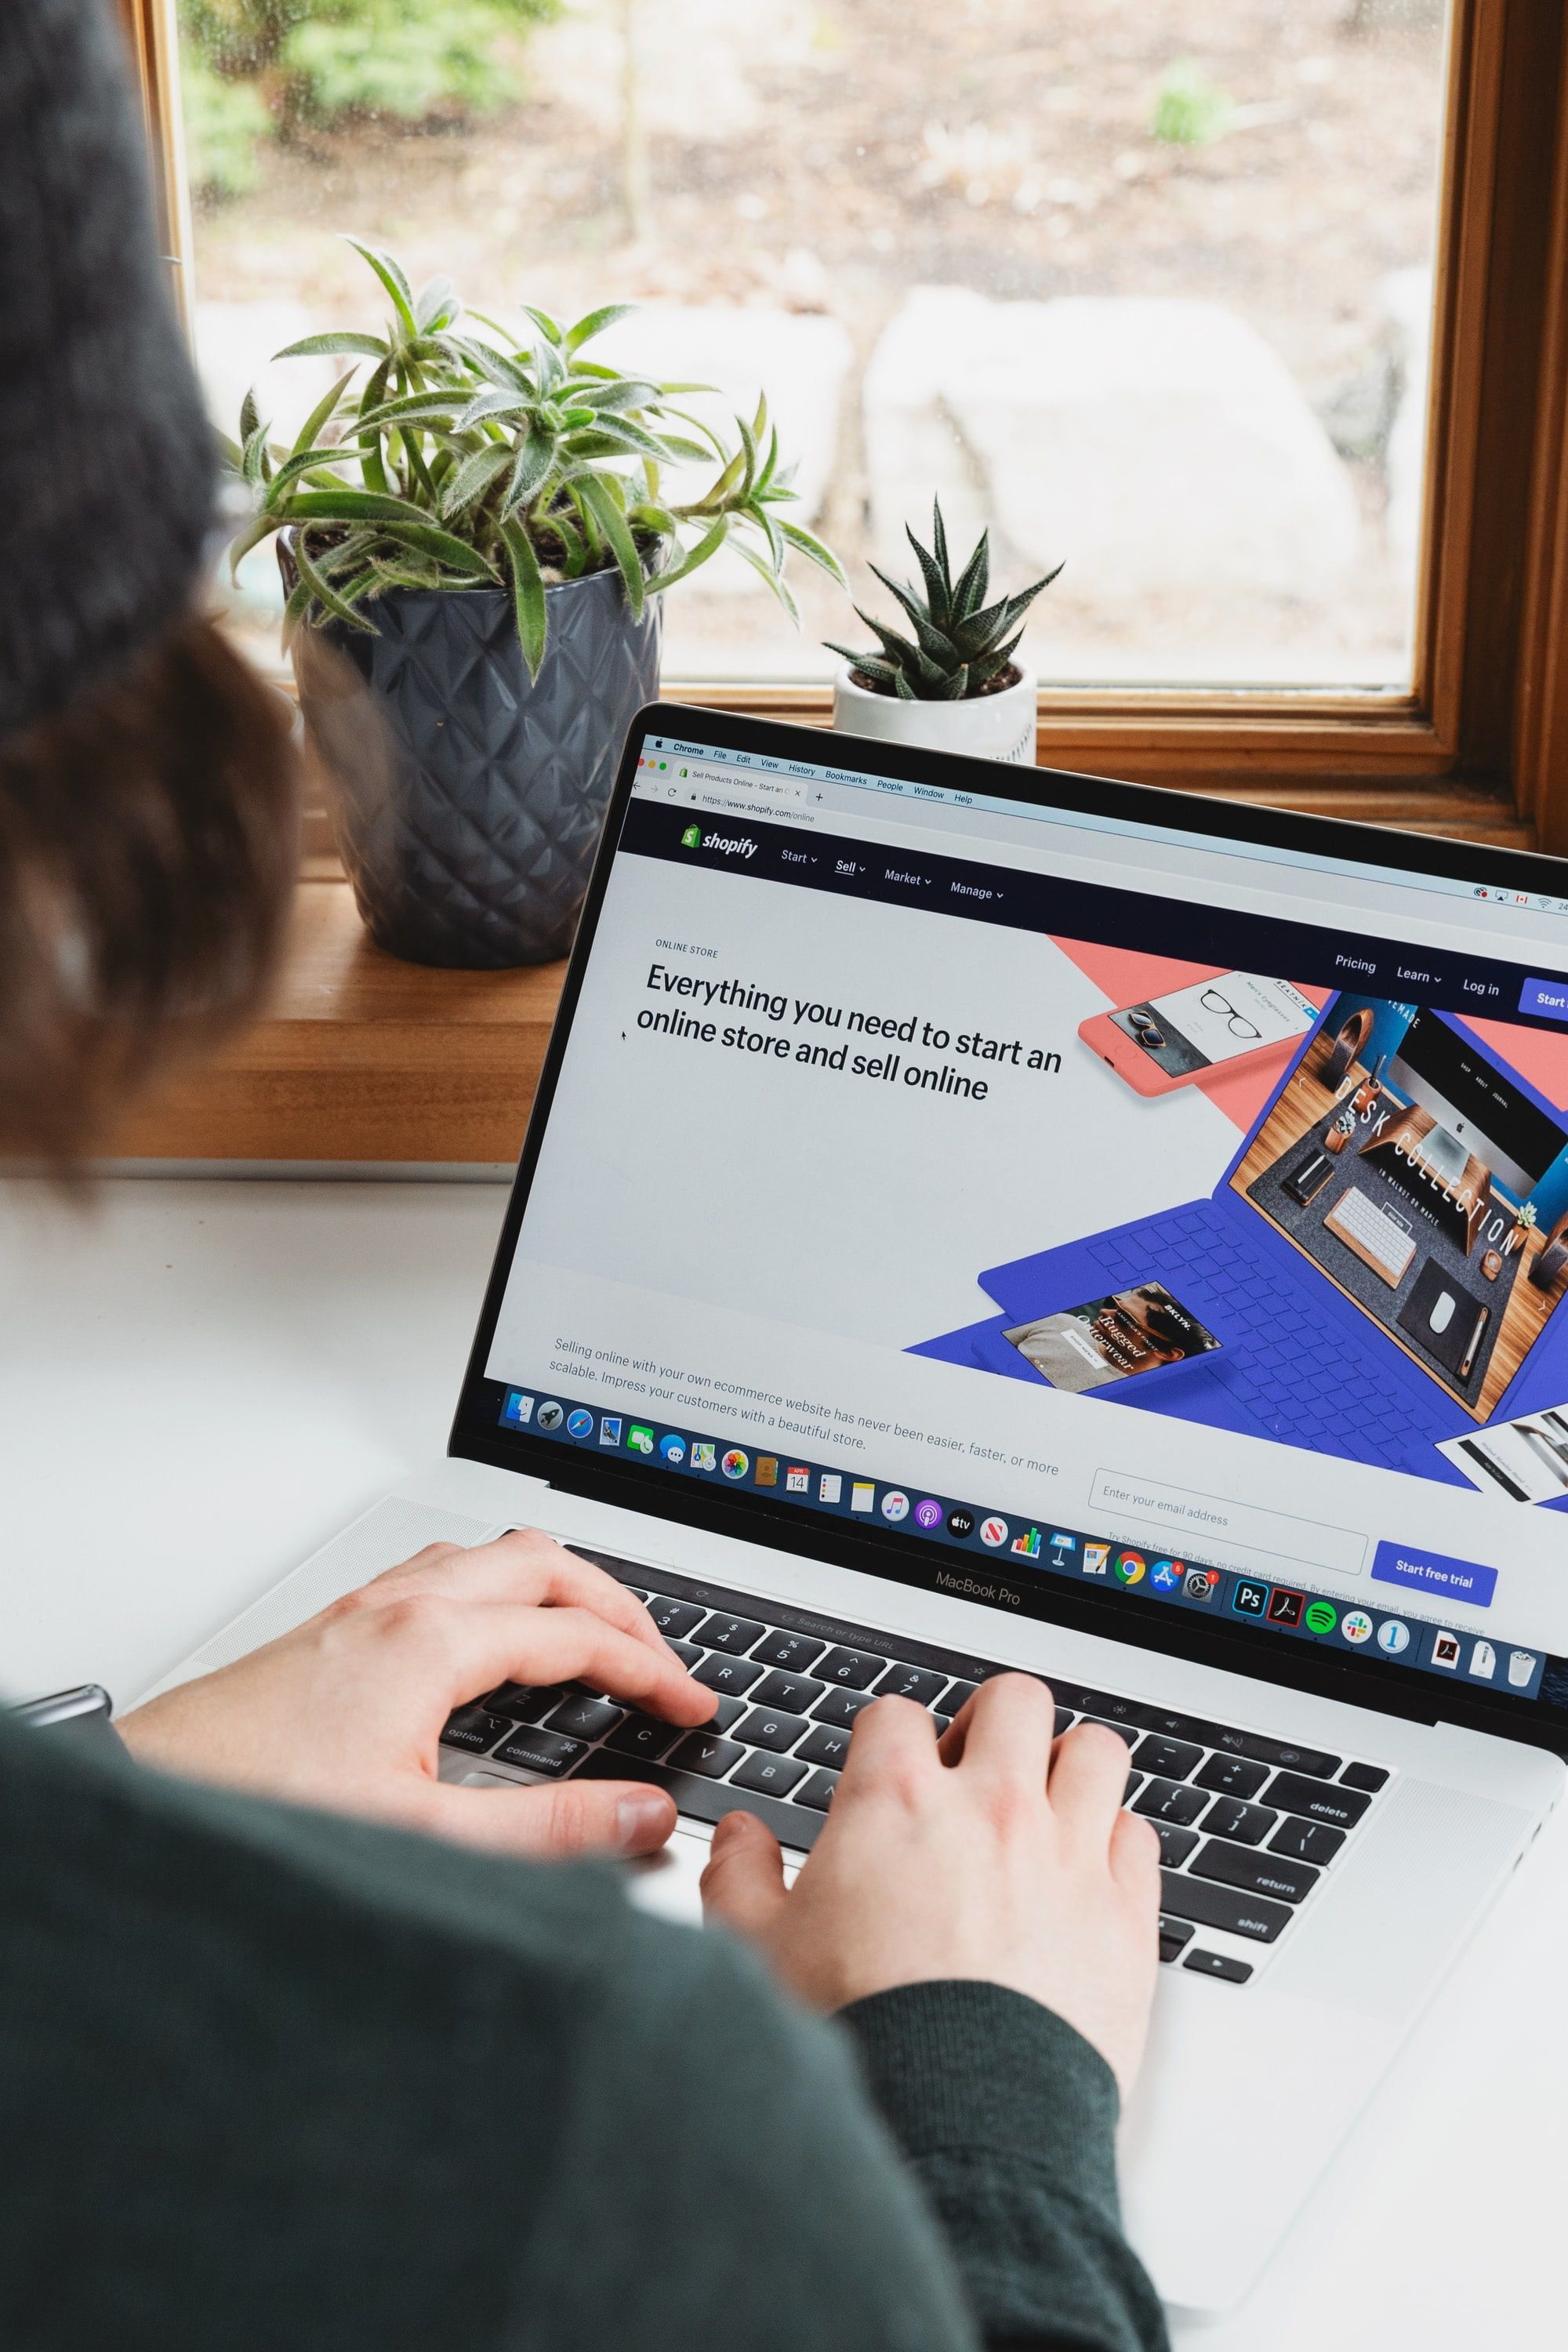 Journey of starting a new online ecommerce business